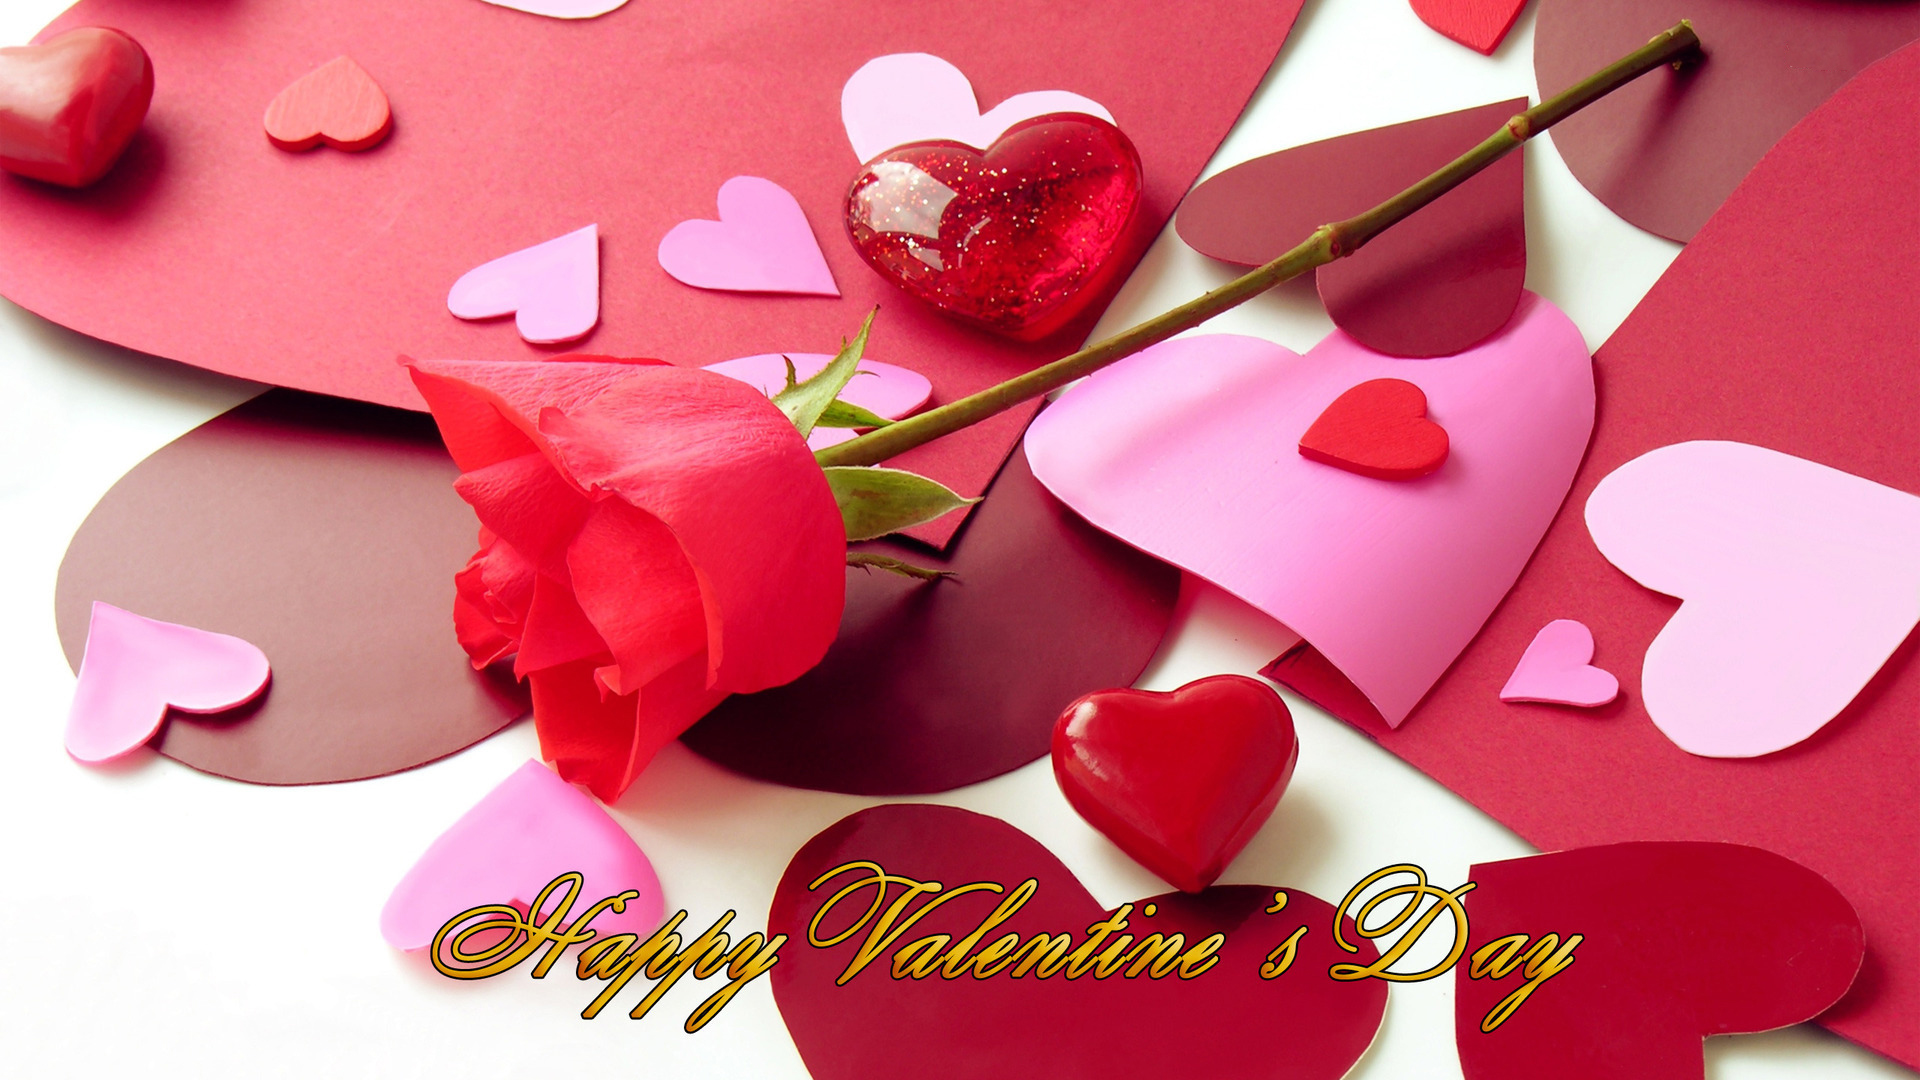 valentines day greeting cards shayari in hindi english love poems - Photo Valentine Cards